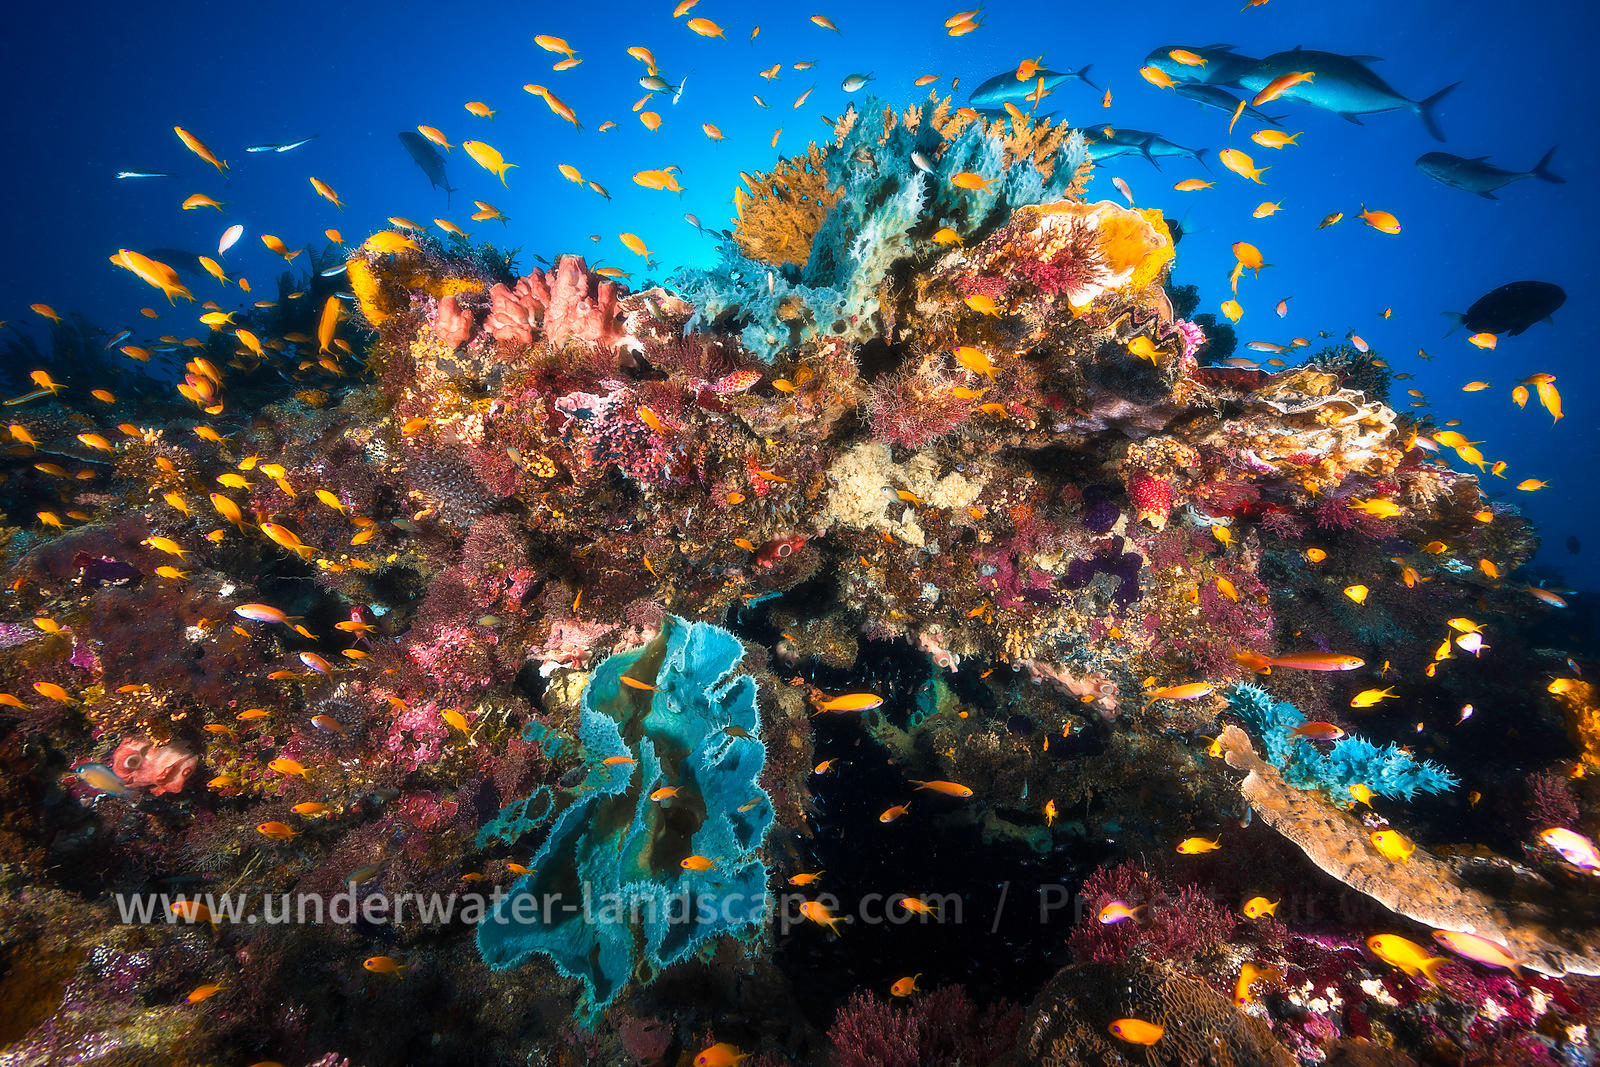 Underwater photo - Fish  in the lagoon of Moheli